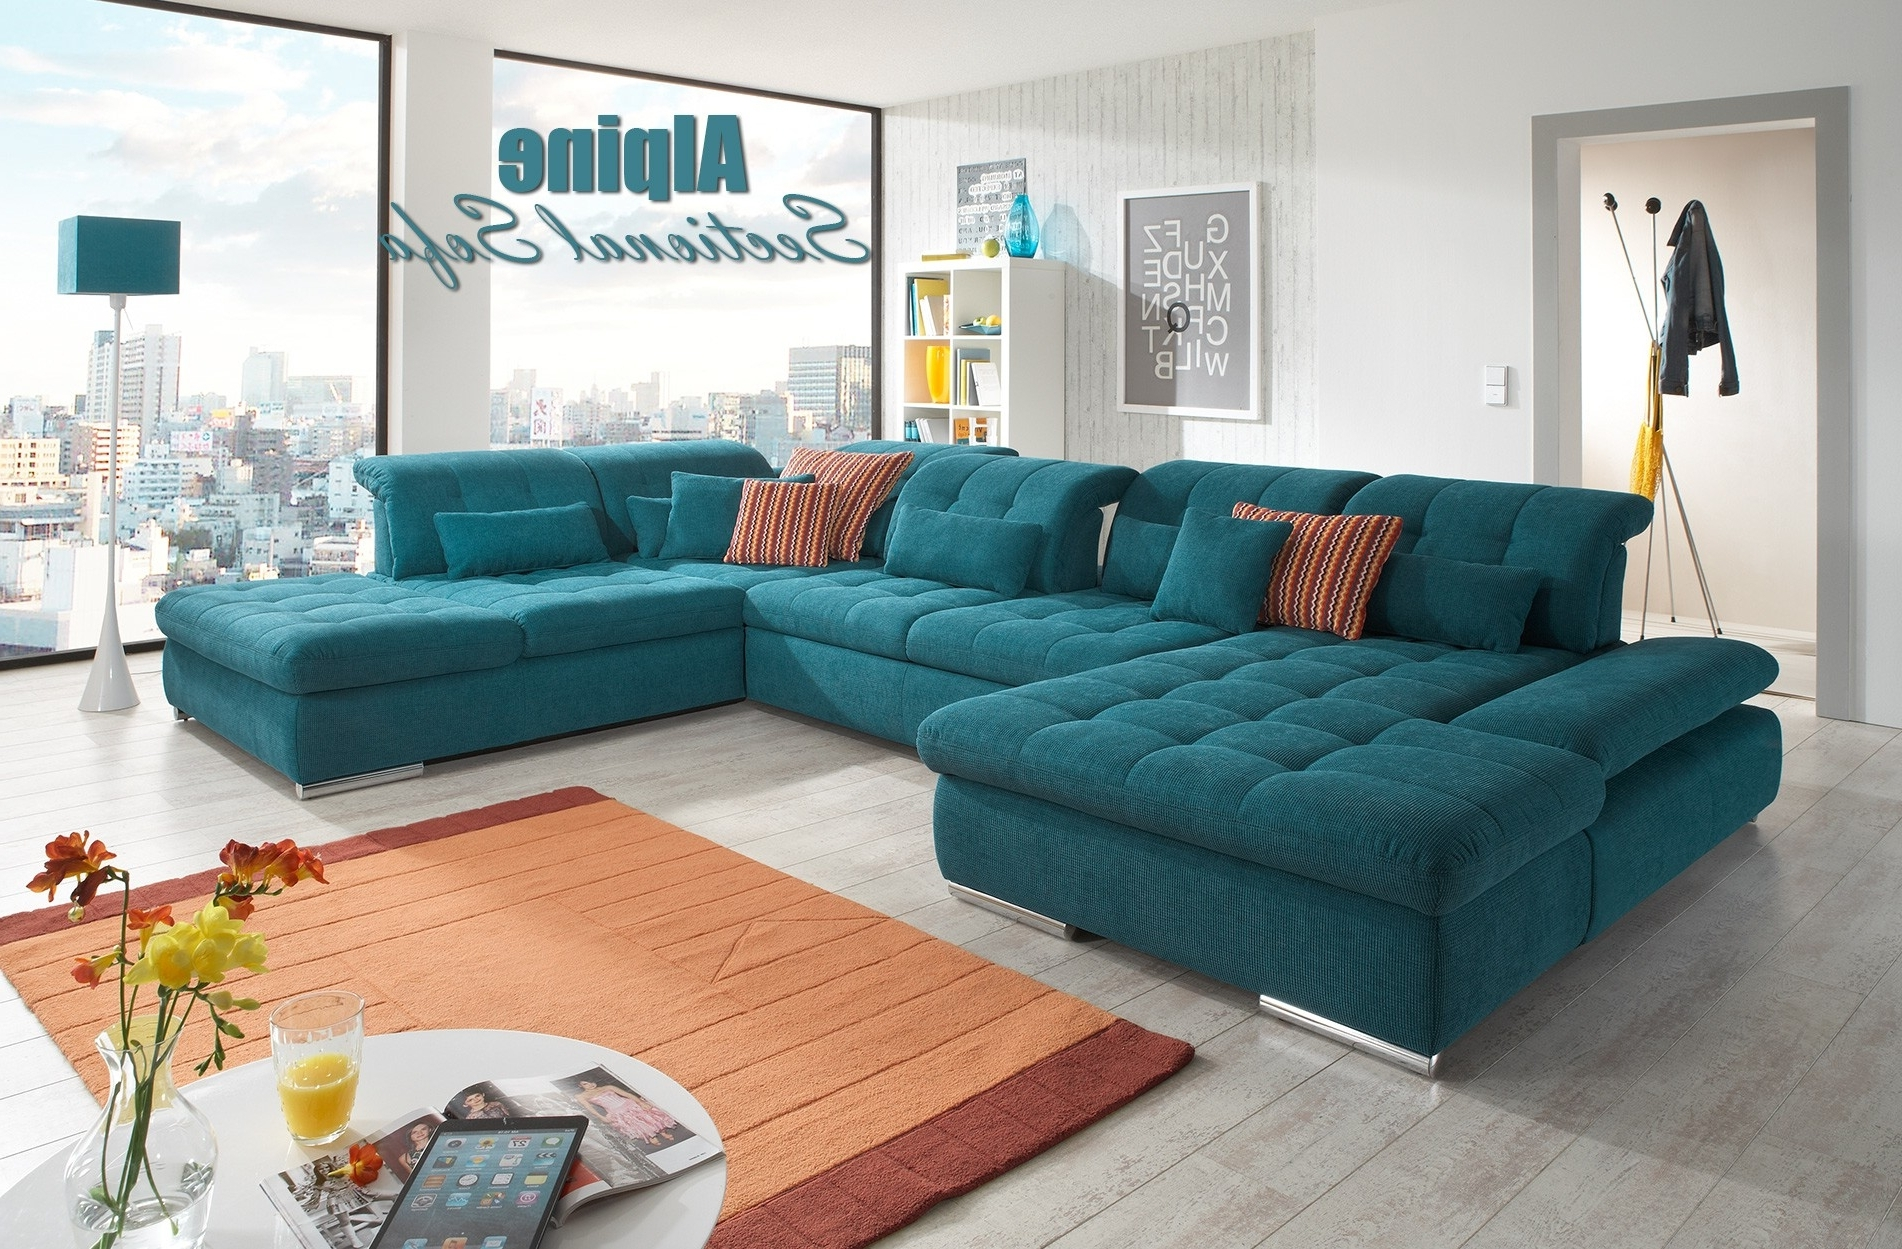 Green Sectional Sofas With Regard To Trendy Alpine Sectional Sofa In Green Fabric (View 9 of 15)